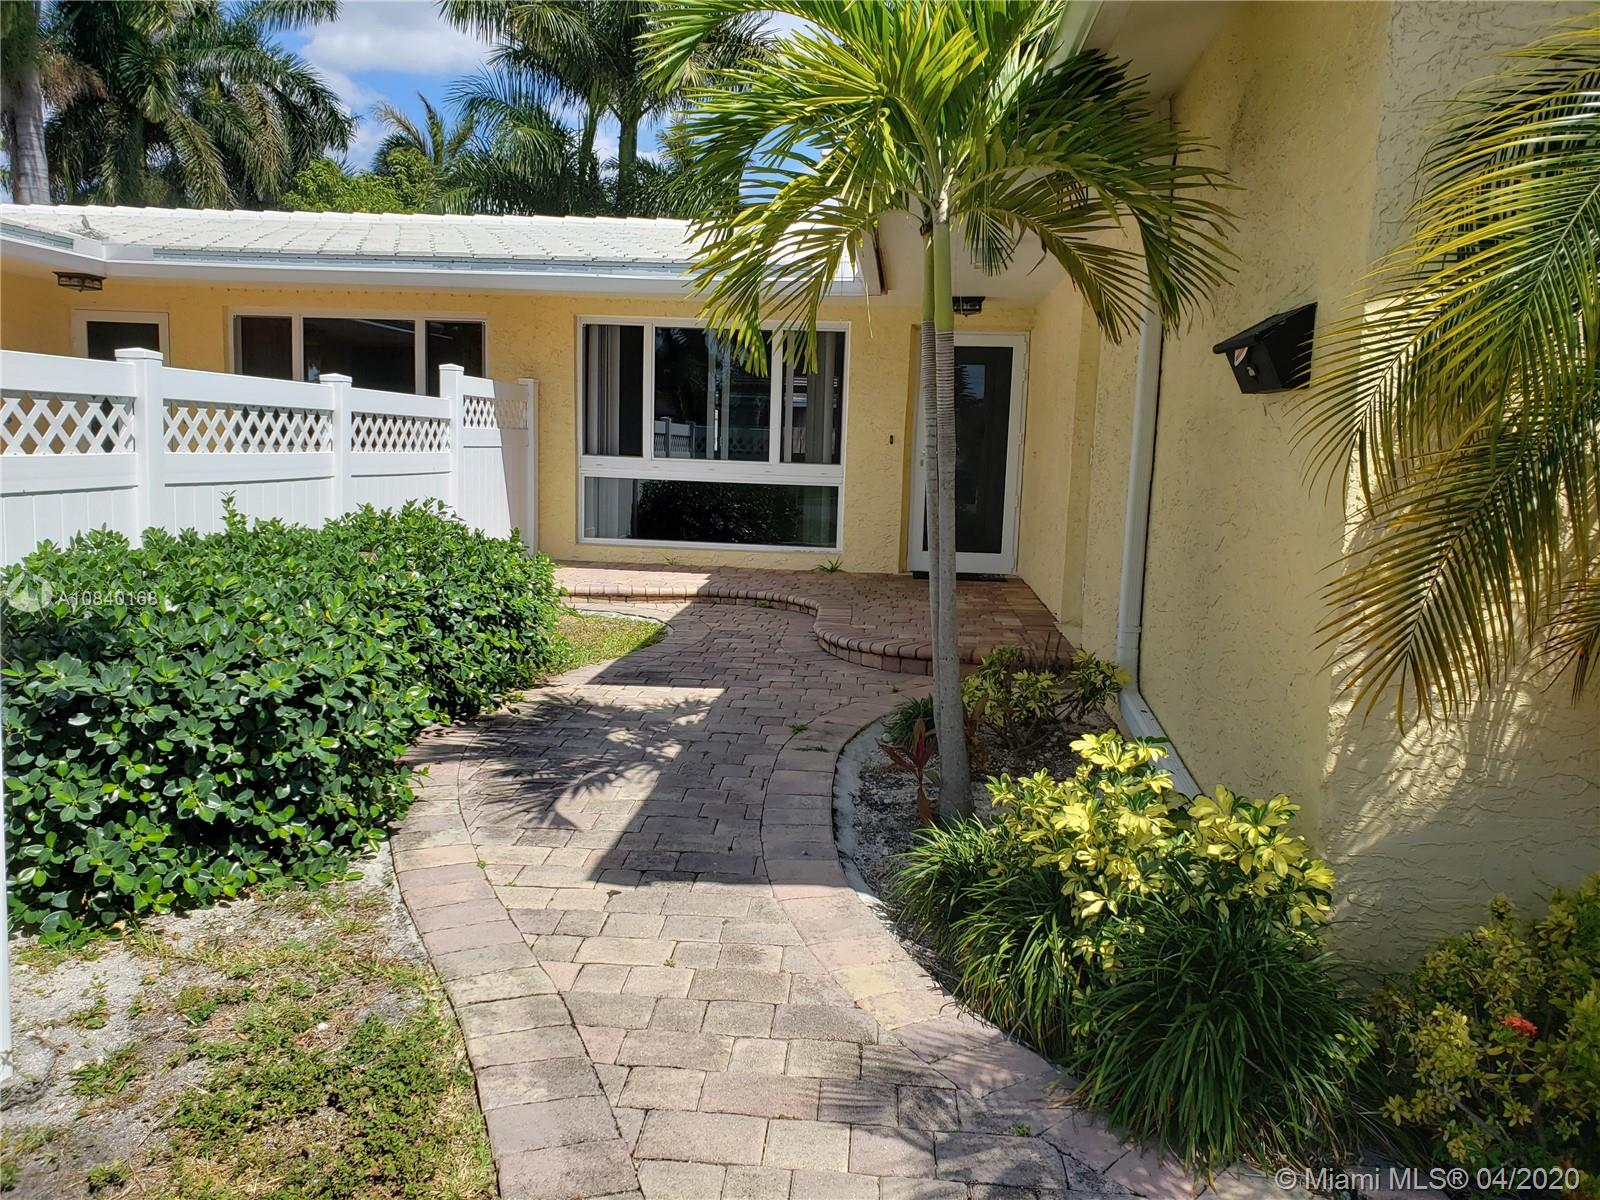 1103 NE 2nd Ct # 2, Hallandale Beach, Florida 33009, 2 Bedrooms Bedrooms, ,2 BathroomsBathrooms,Residential Lease,For Rent,1103 NE 2nd Ct # 2,A10840168